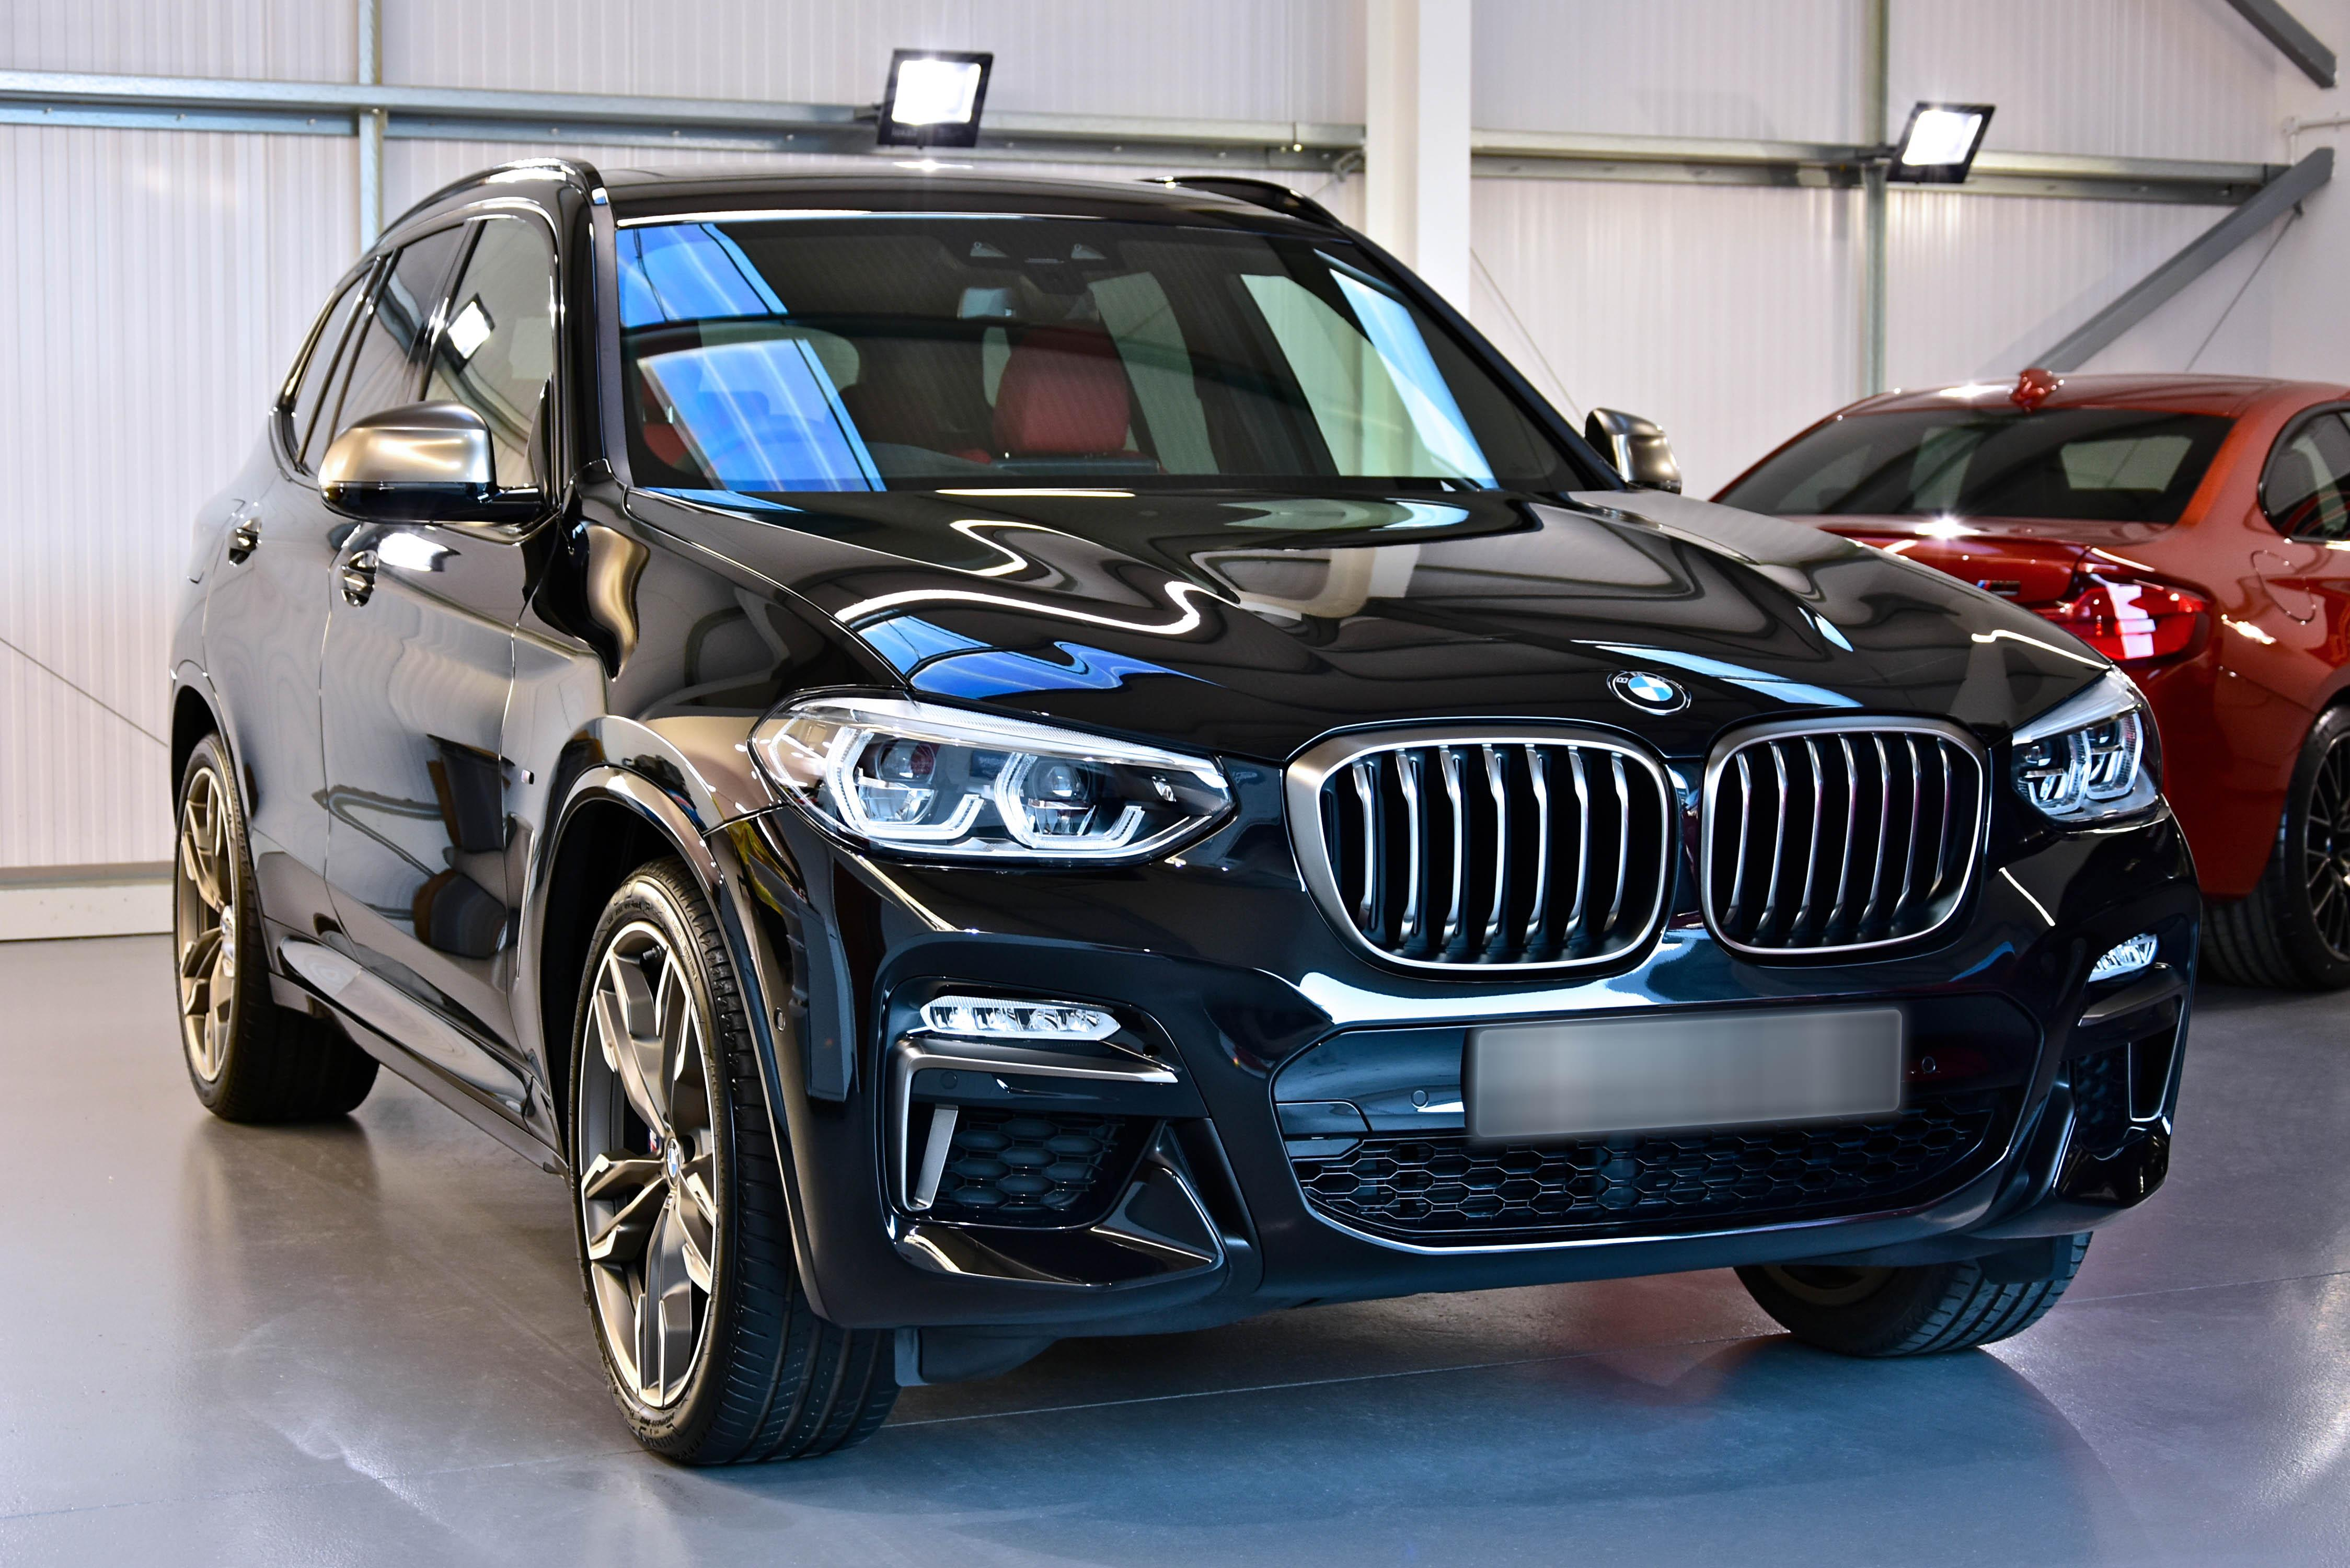 BMW X3 M40i New Car Enhancement and Protection Detail with Feynlab Self Heal Plus and XPEL PPF